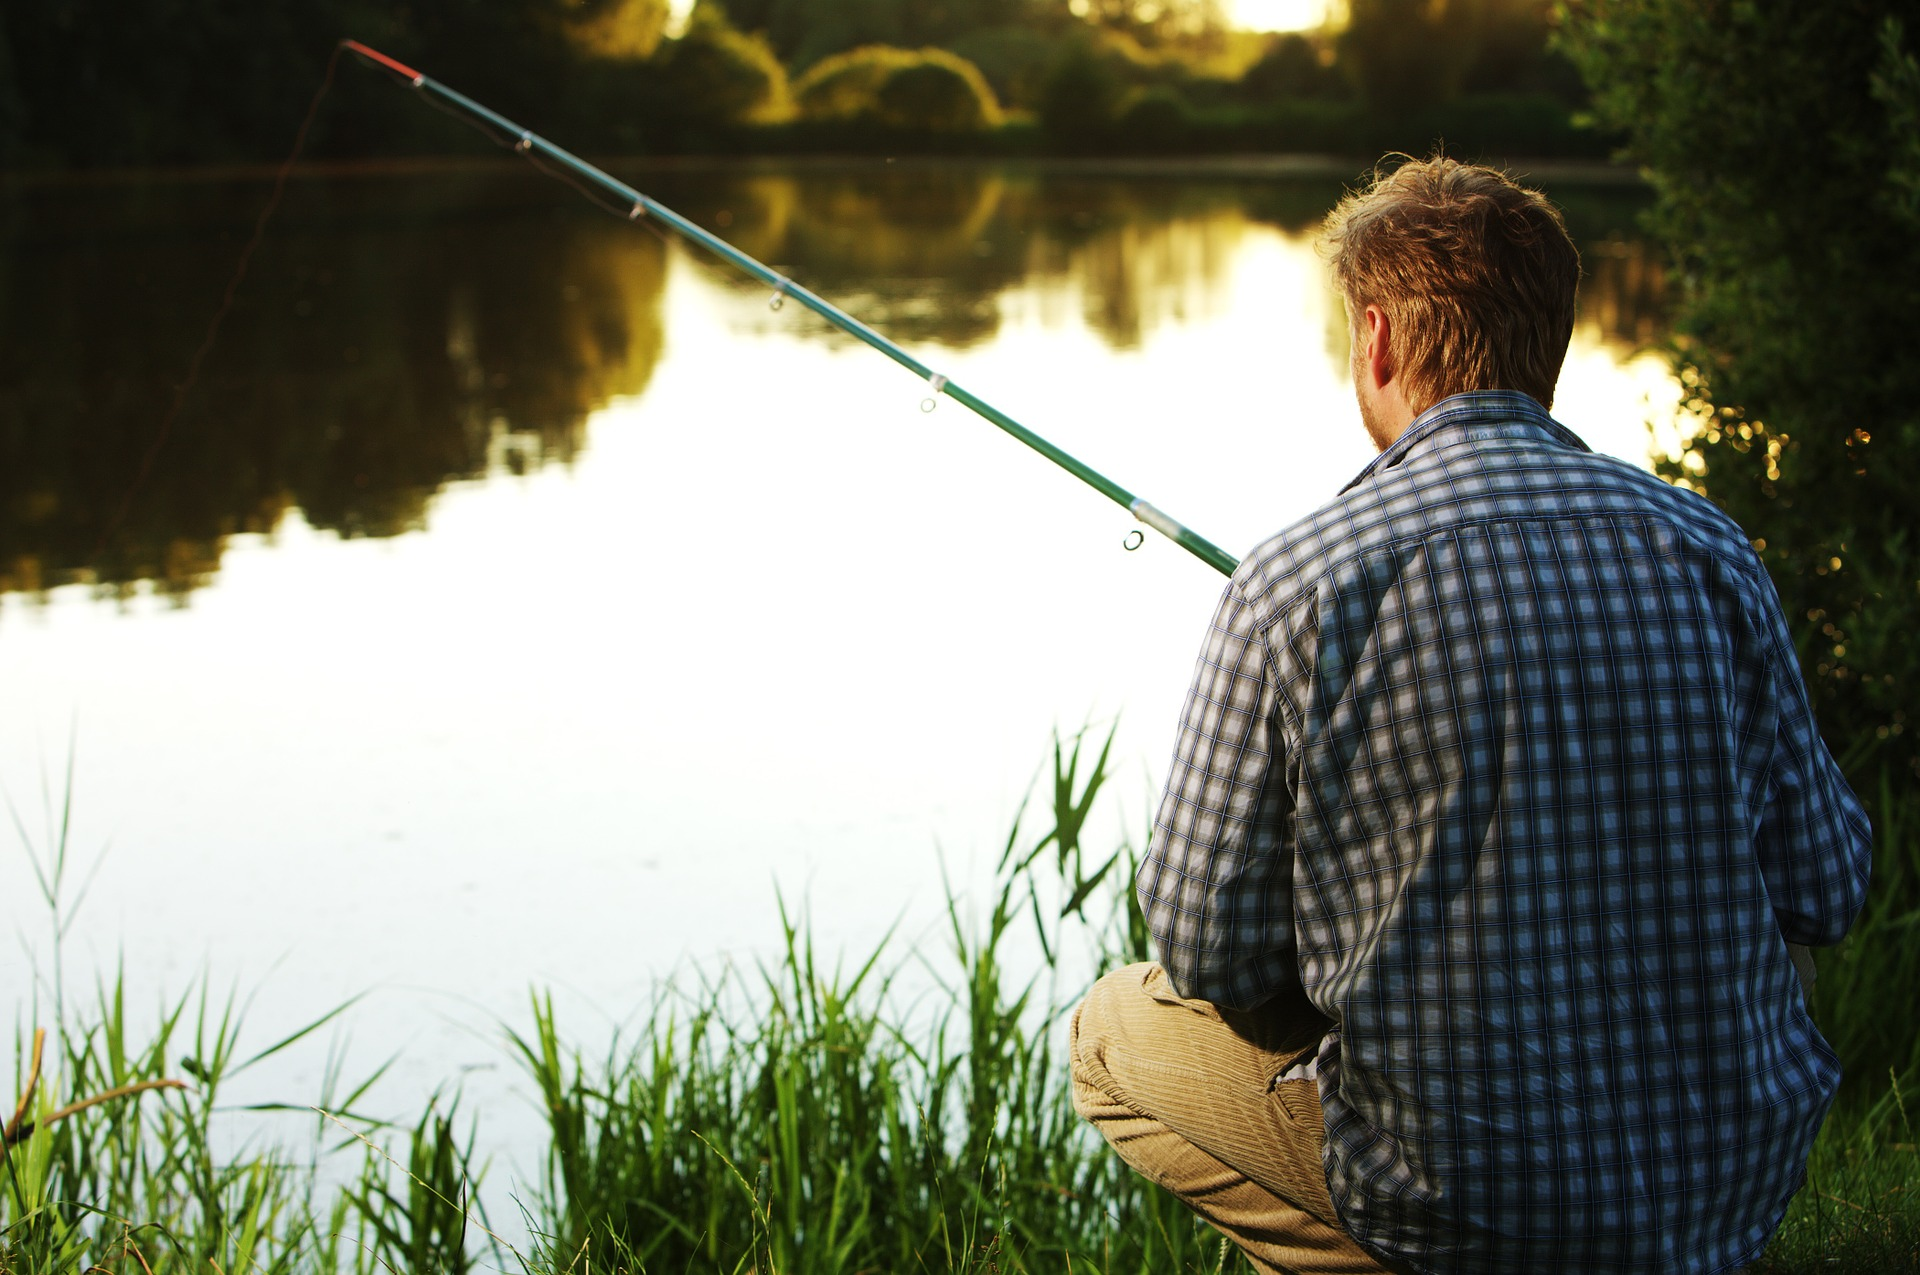 Our Beginners Guide To Fishing